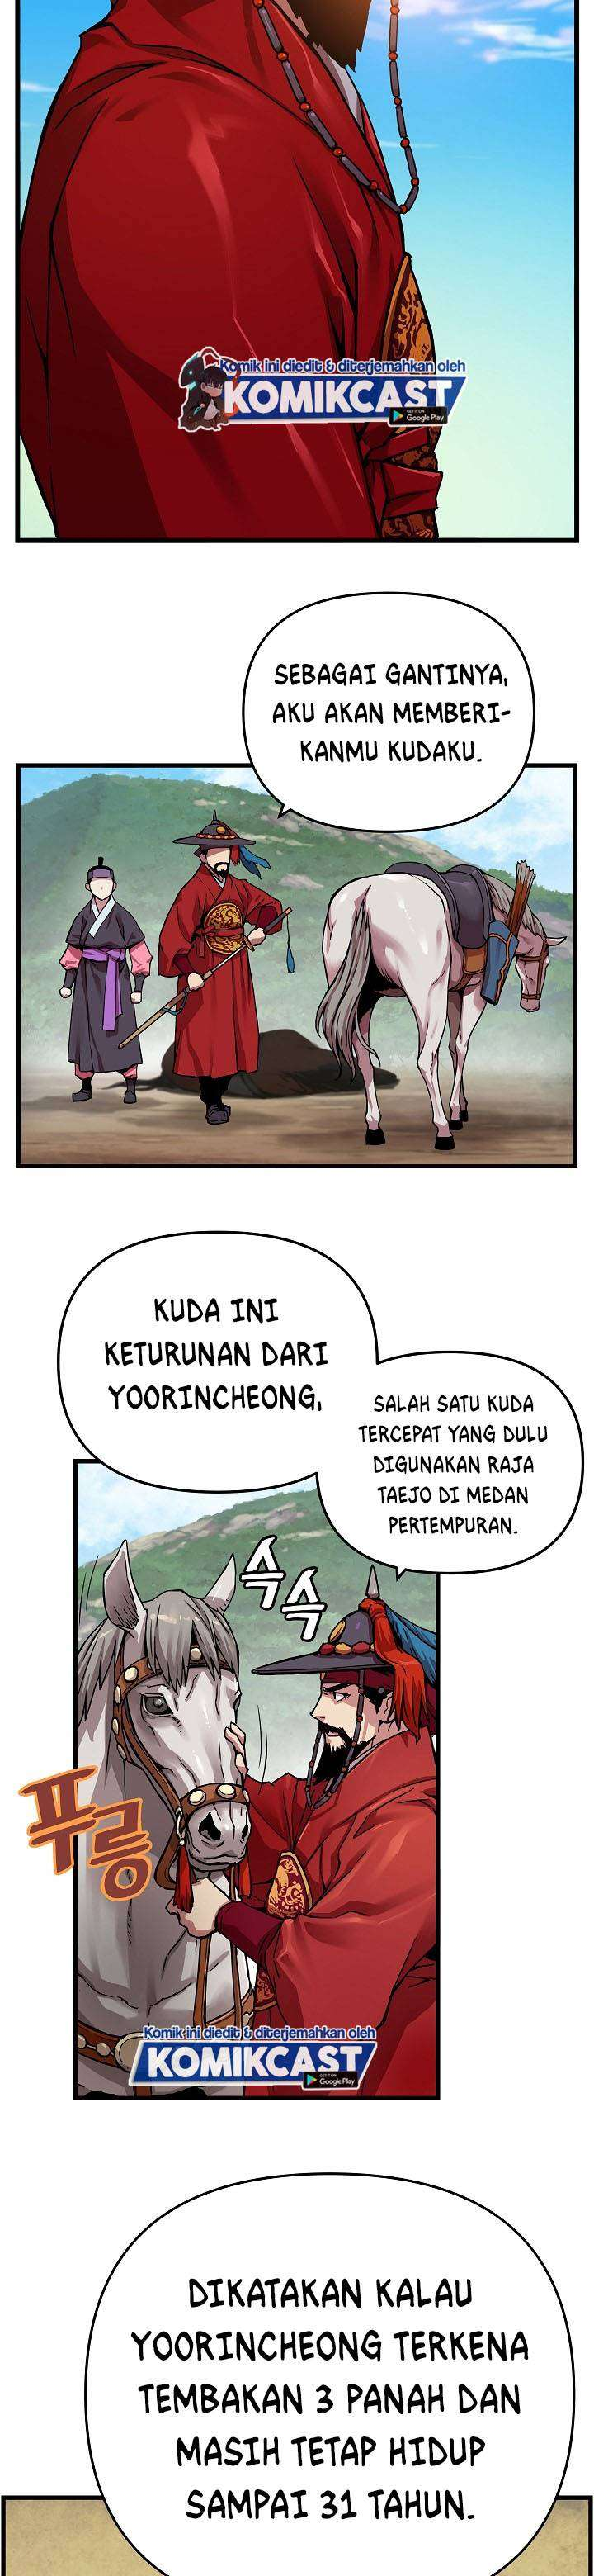 I Shall Live As a Prince Chapter 02 Bahasa Indonesia page 37